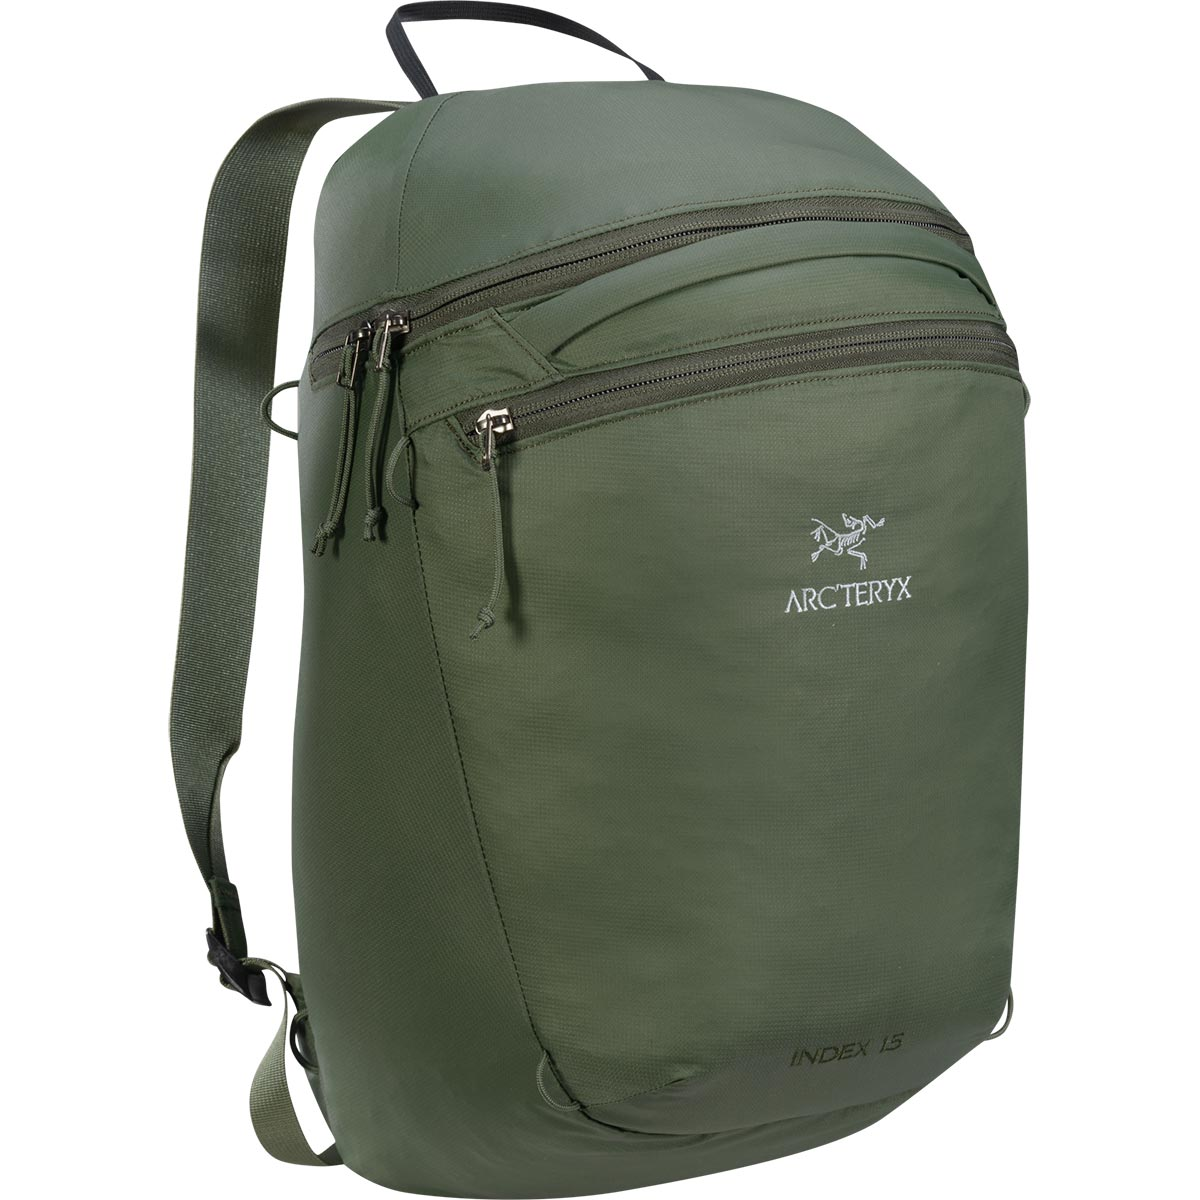 Arc Teryx Index 15 Backpack Daypacks And Small